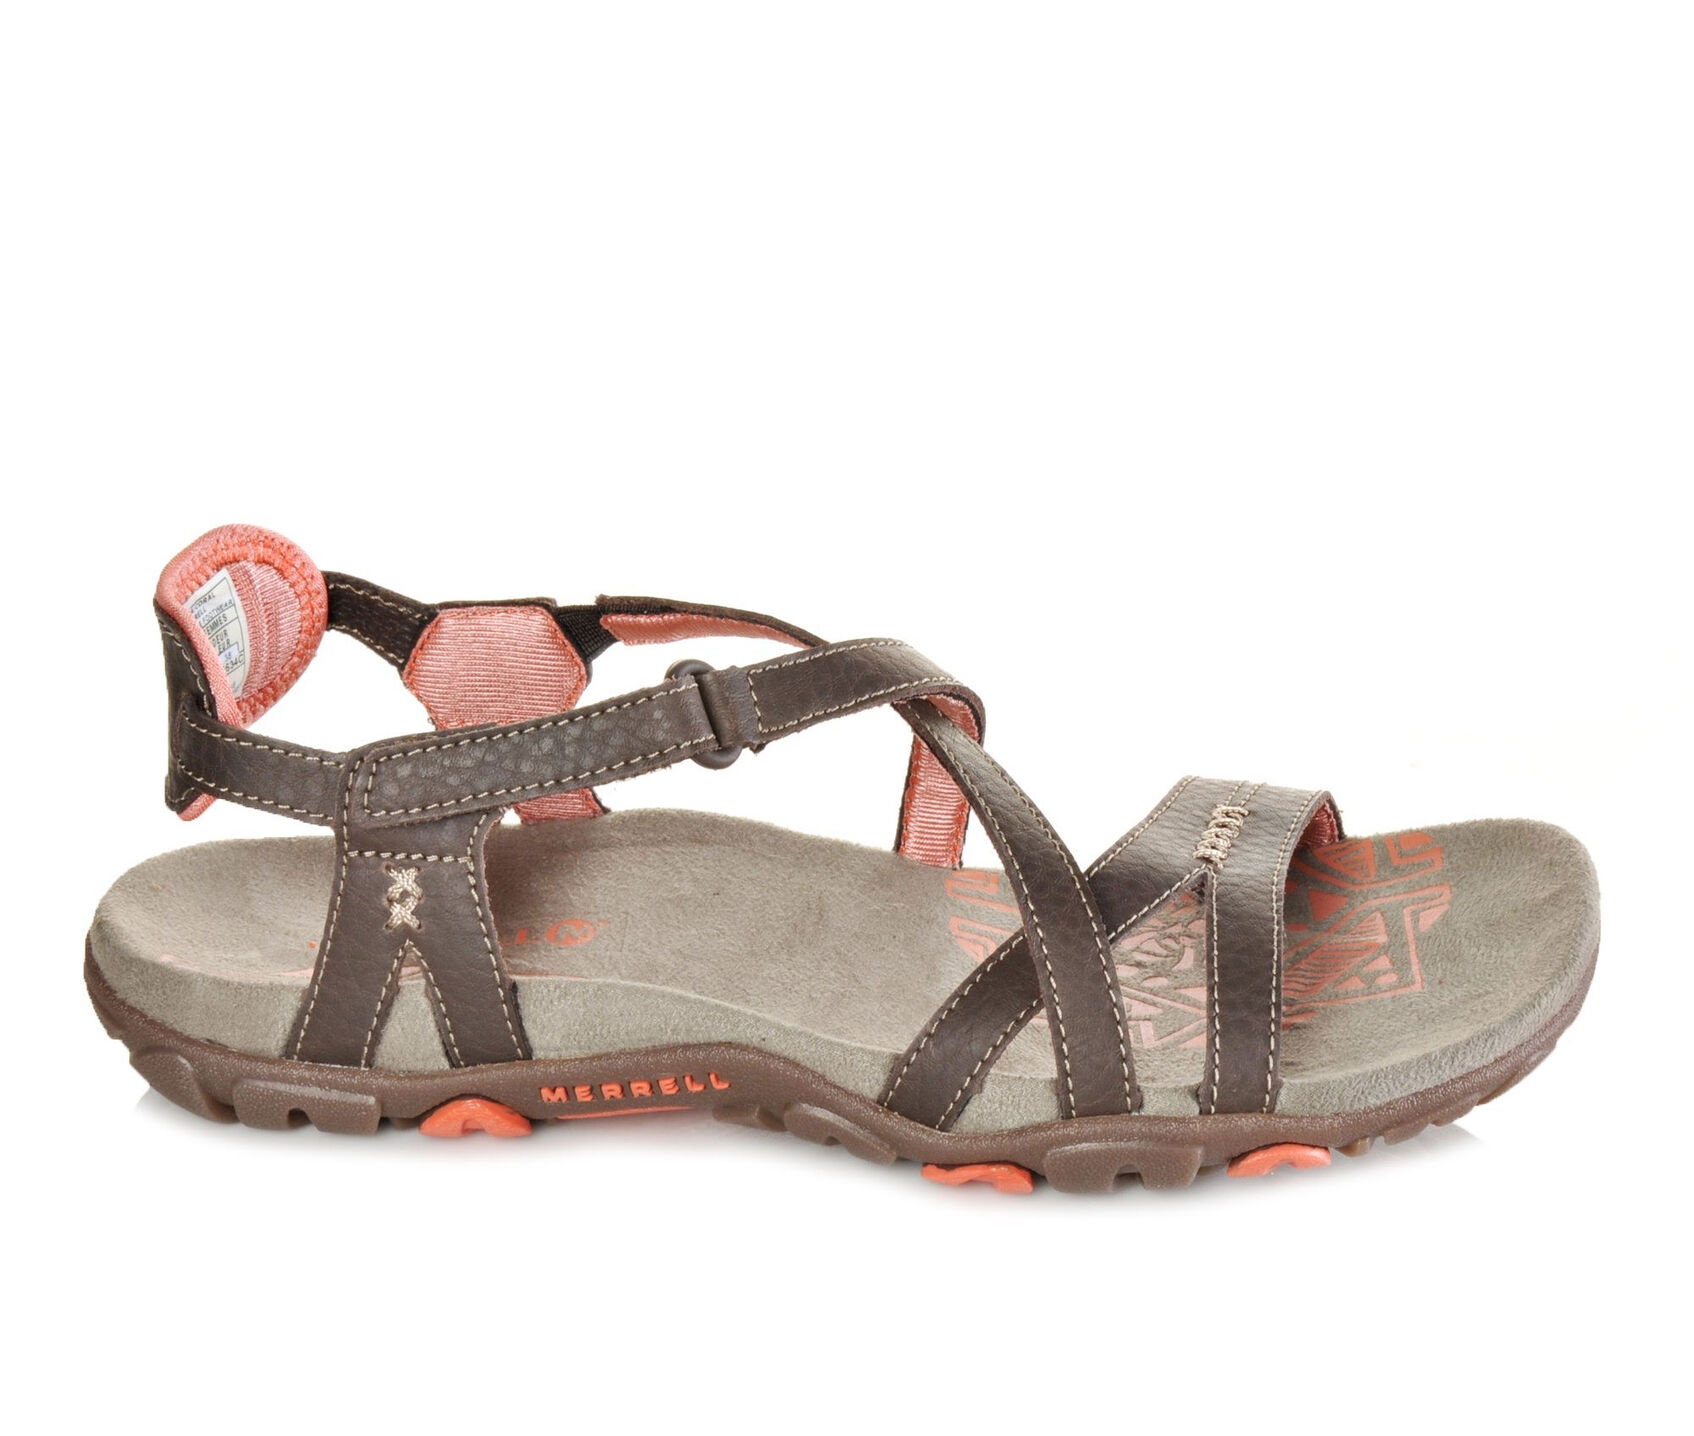 640a83c94d84 ... Merrell Sandspur Rose Leather Hiking Sandals. Previous